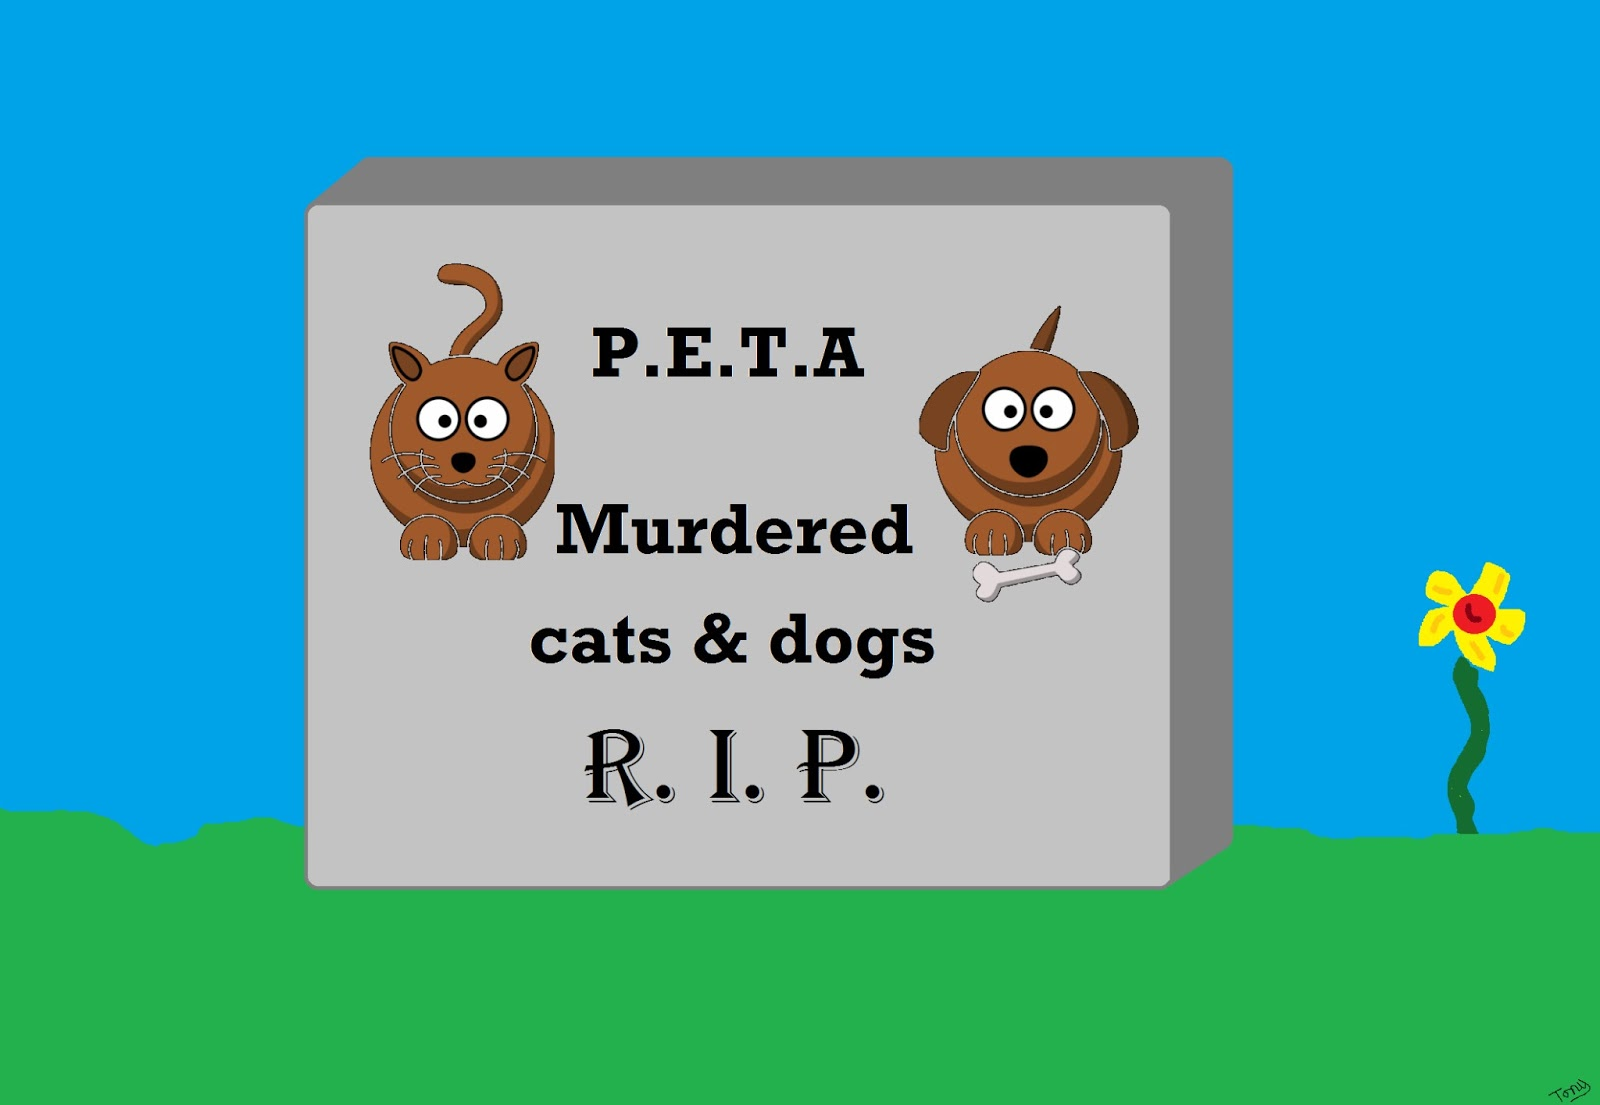 Abused dog clipart black and white peta. Clipartfest objects to the